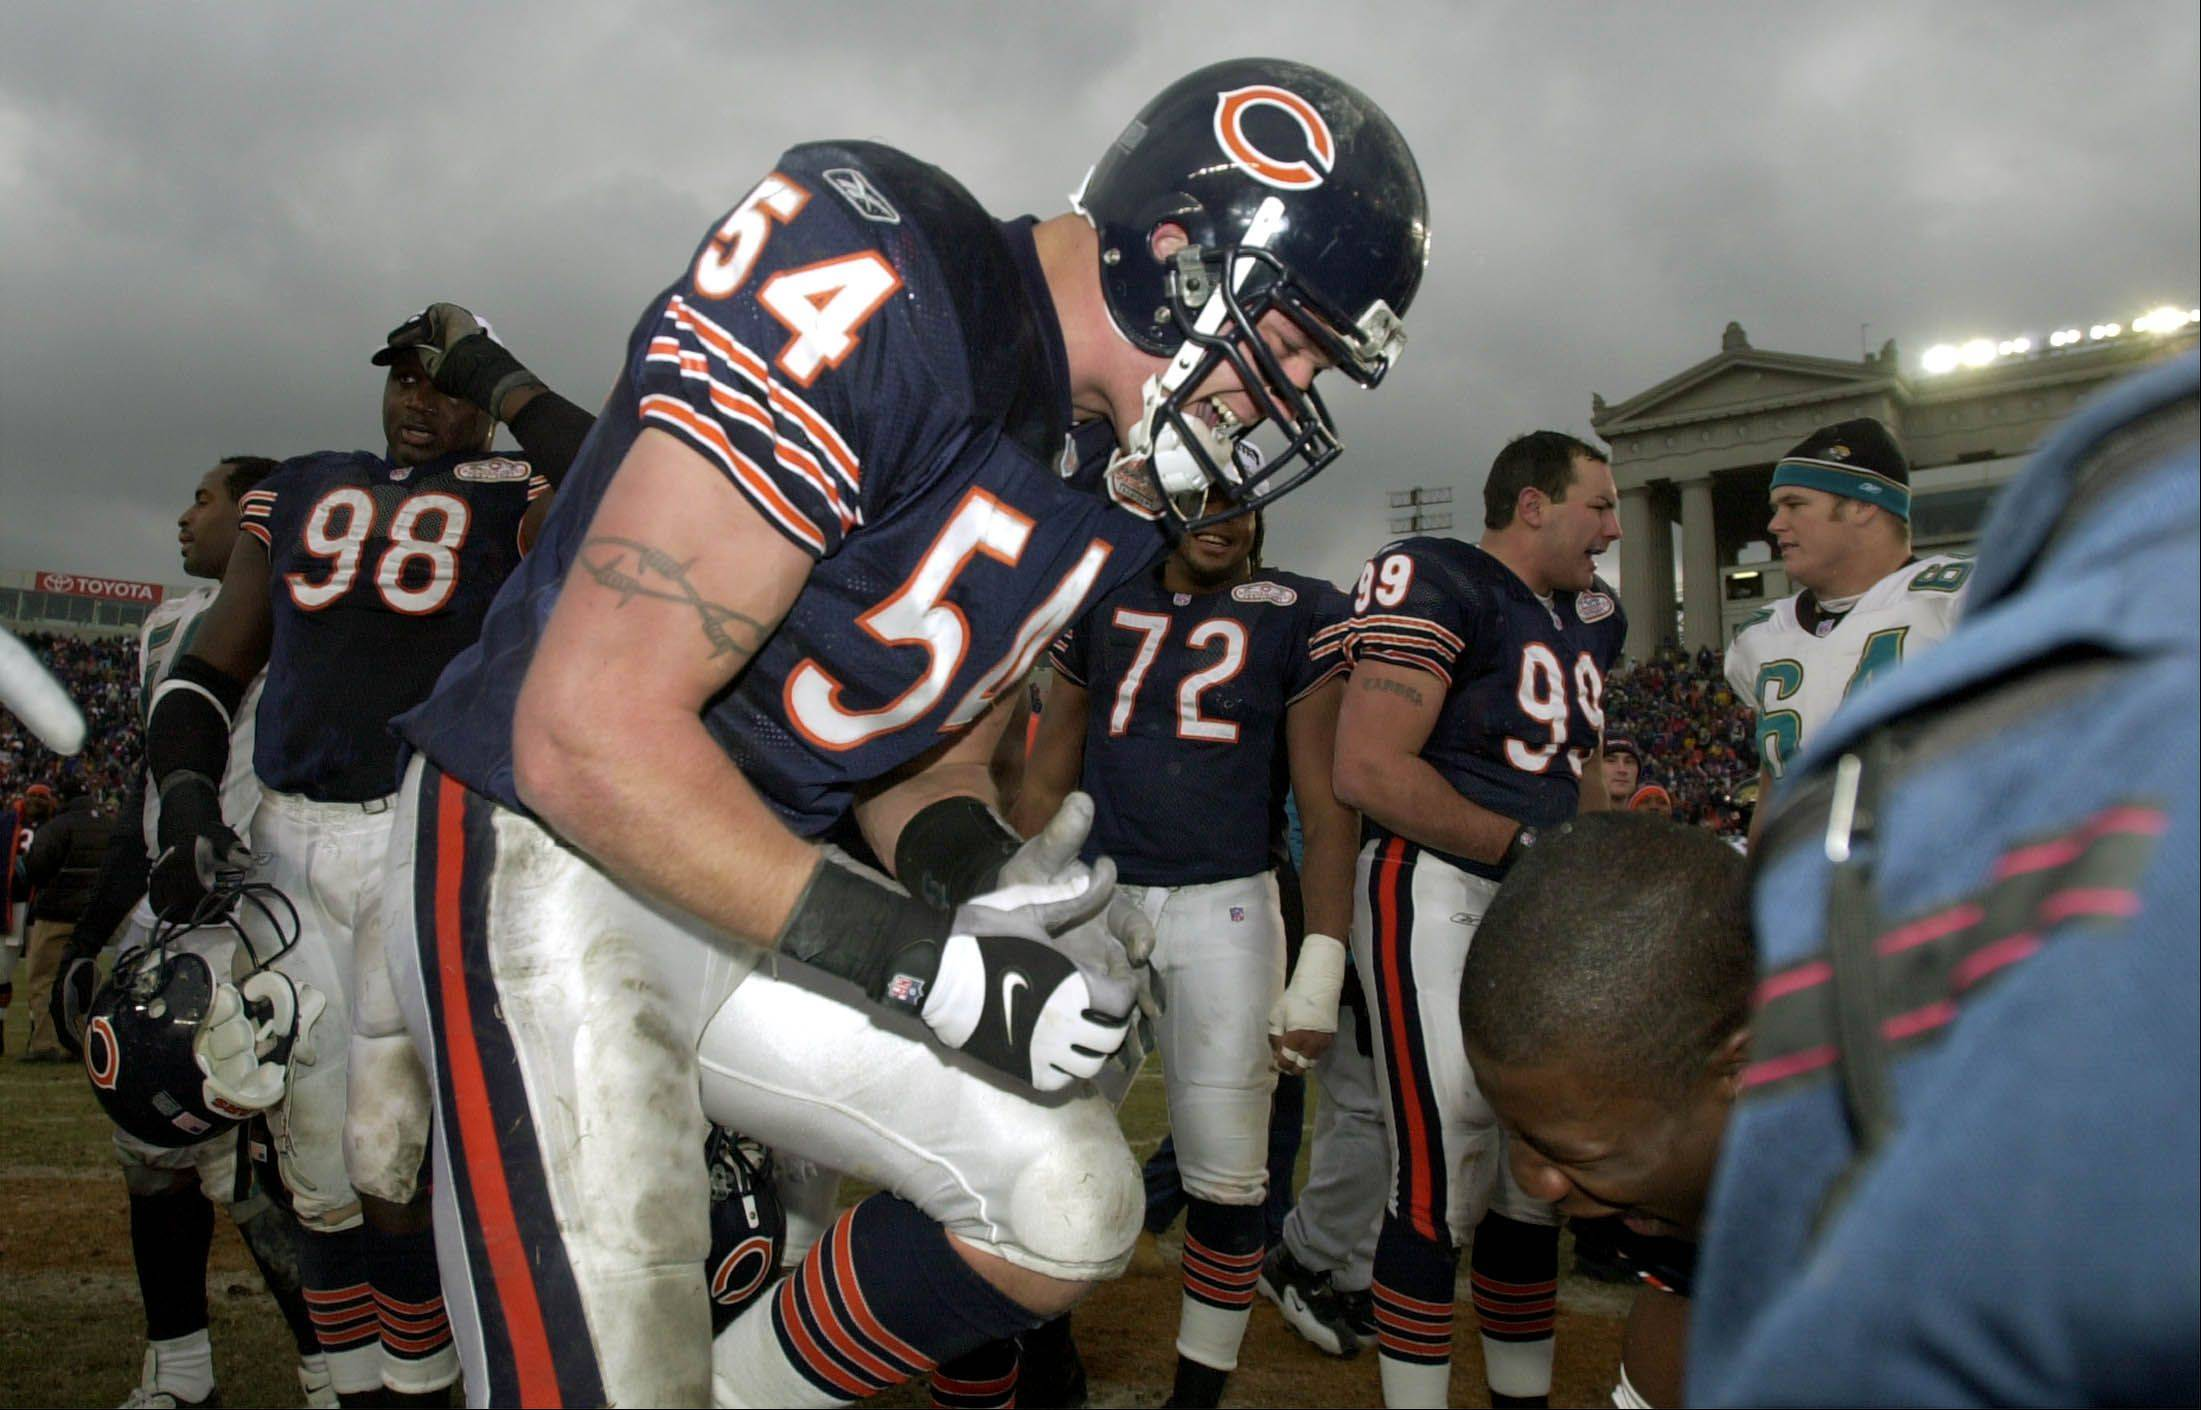 Chicago Bears linebacker Brian Urlacher celebrates on the field.